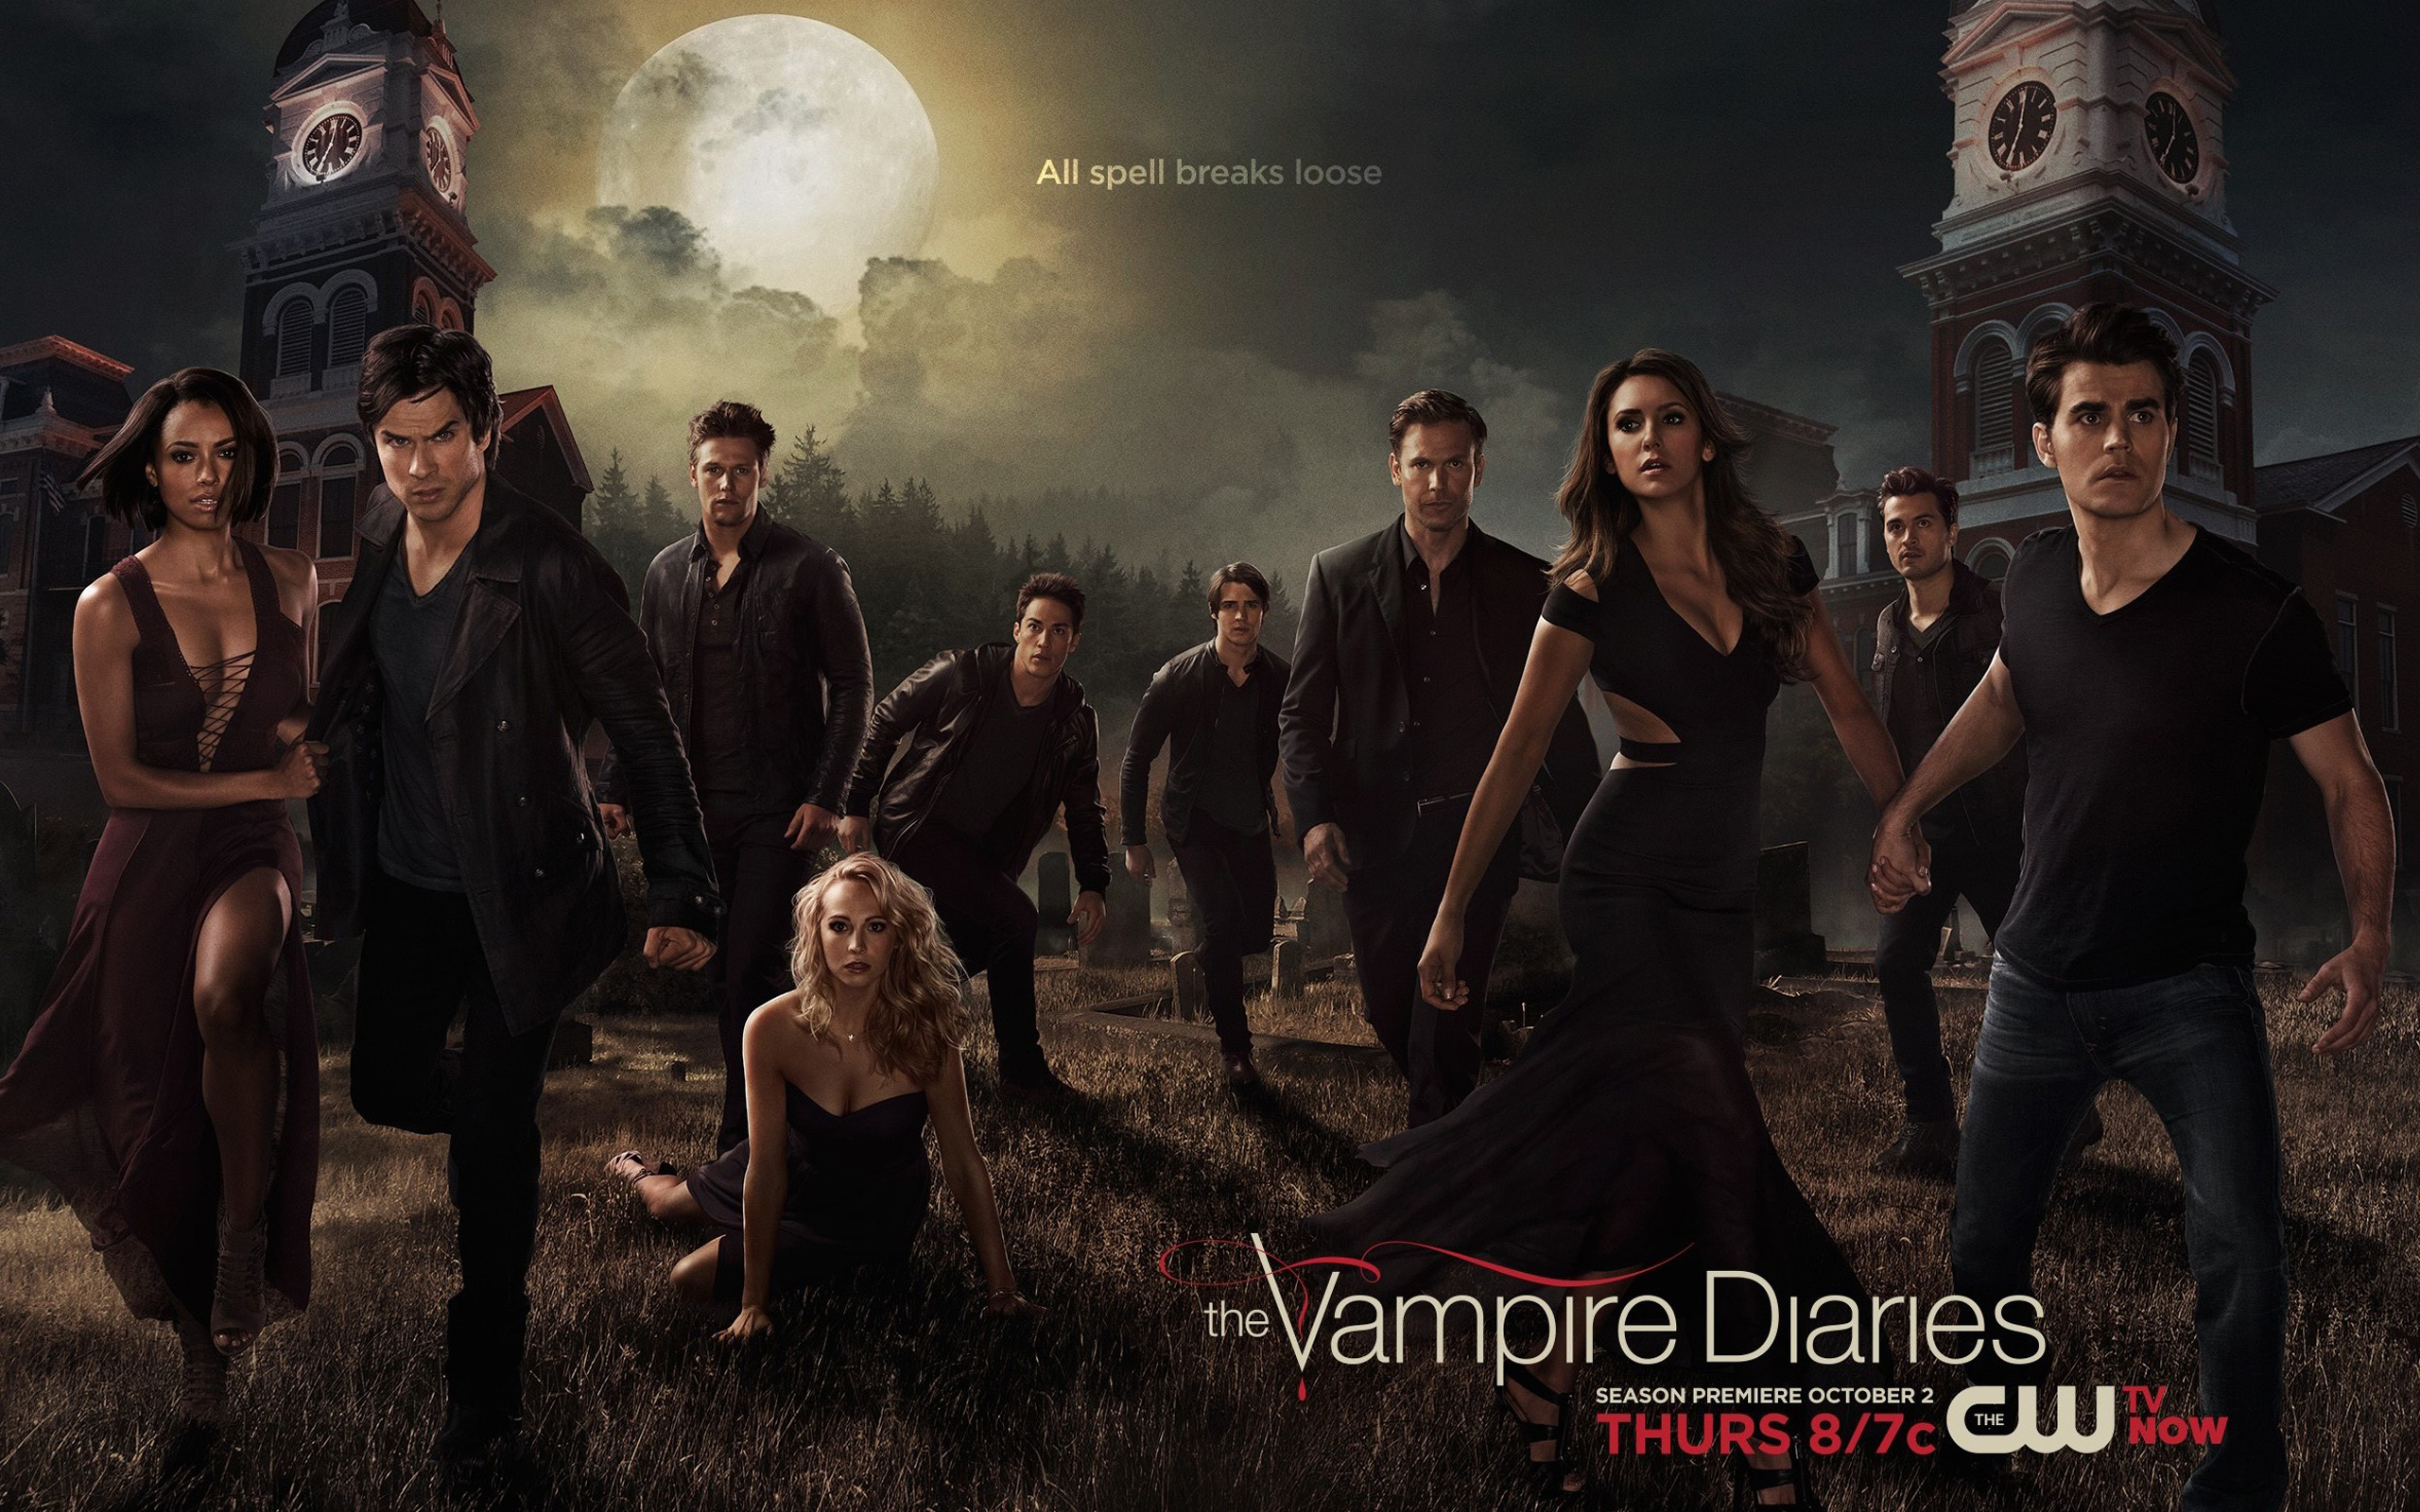 The Vampire Diaries Season 6 Exclusive HD Wallpapers #7205